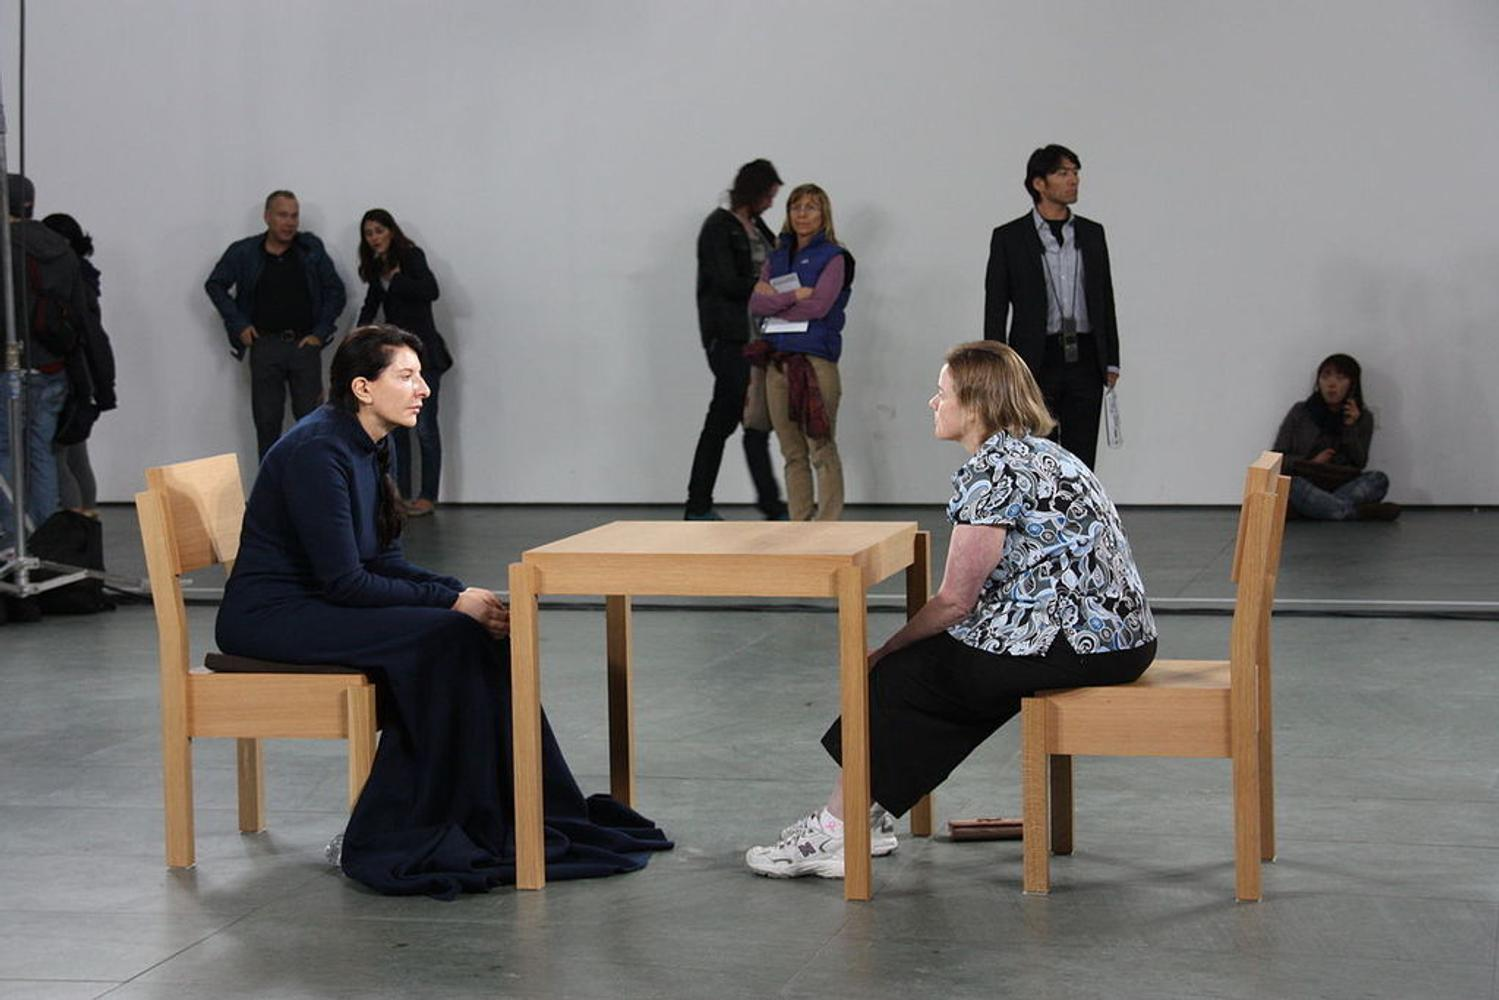 Marina abramovic piece causes uproar at california high school marina abramovic piece causes uproar at california high school artfixdaily news feed thecheapjerseys Image collections